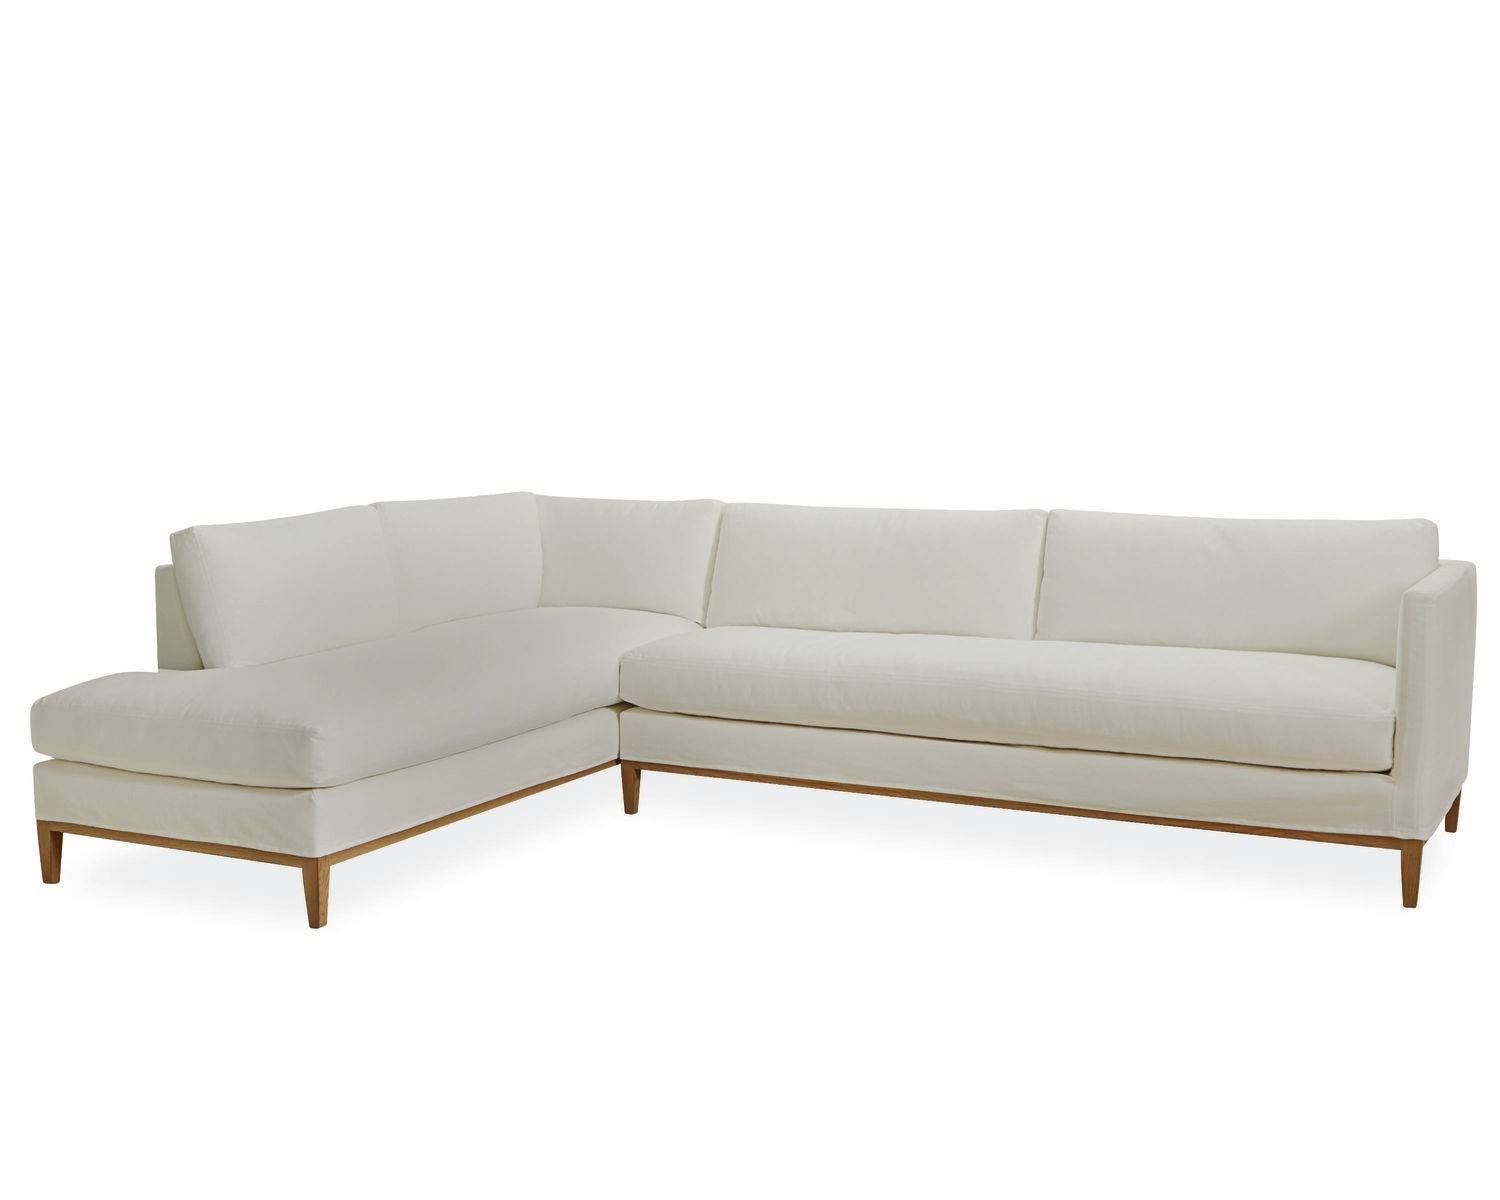 American Furniture | Palm Springs Chaise Sectional | Lee Industries with regard to Lee Industries Sectional Sofa (Image 6 of 25)